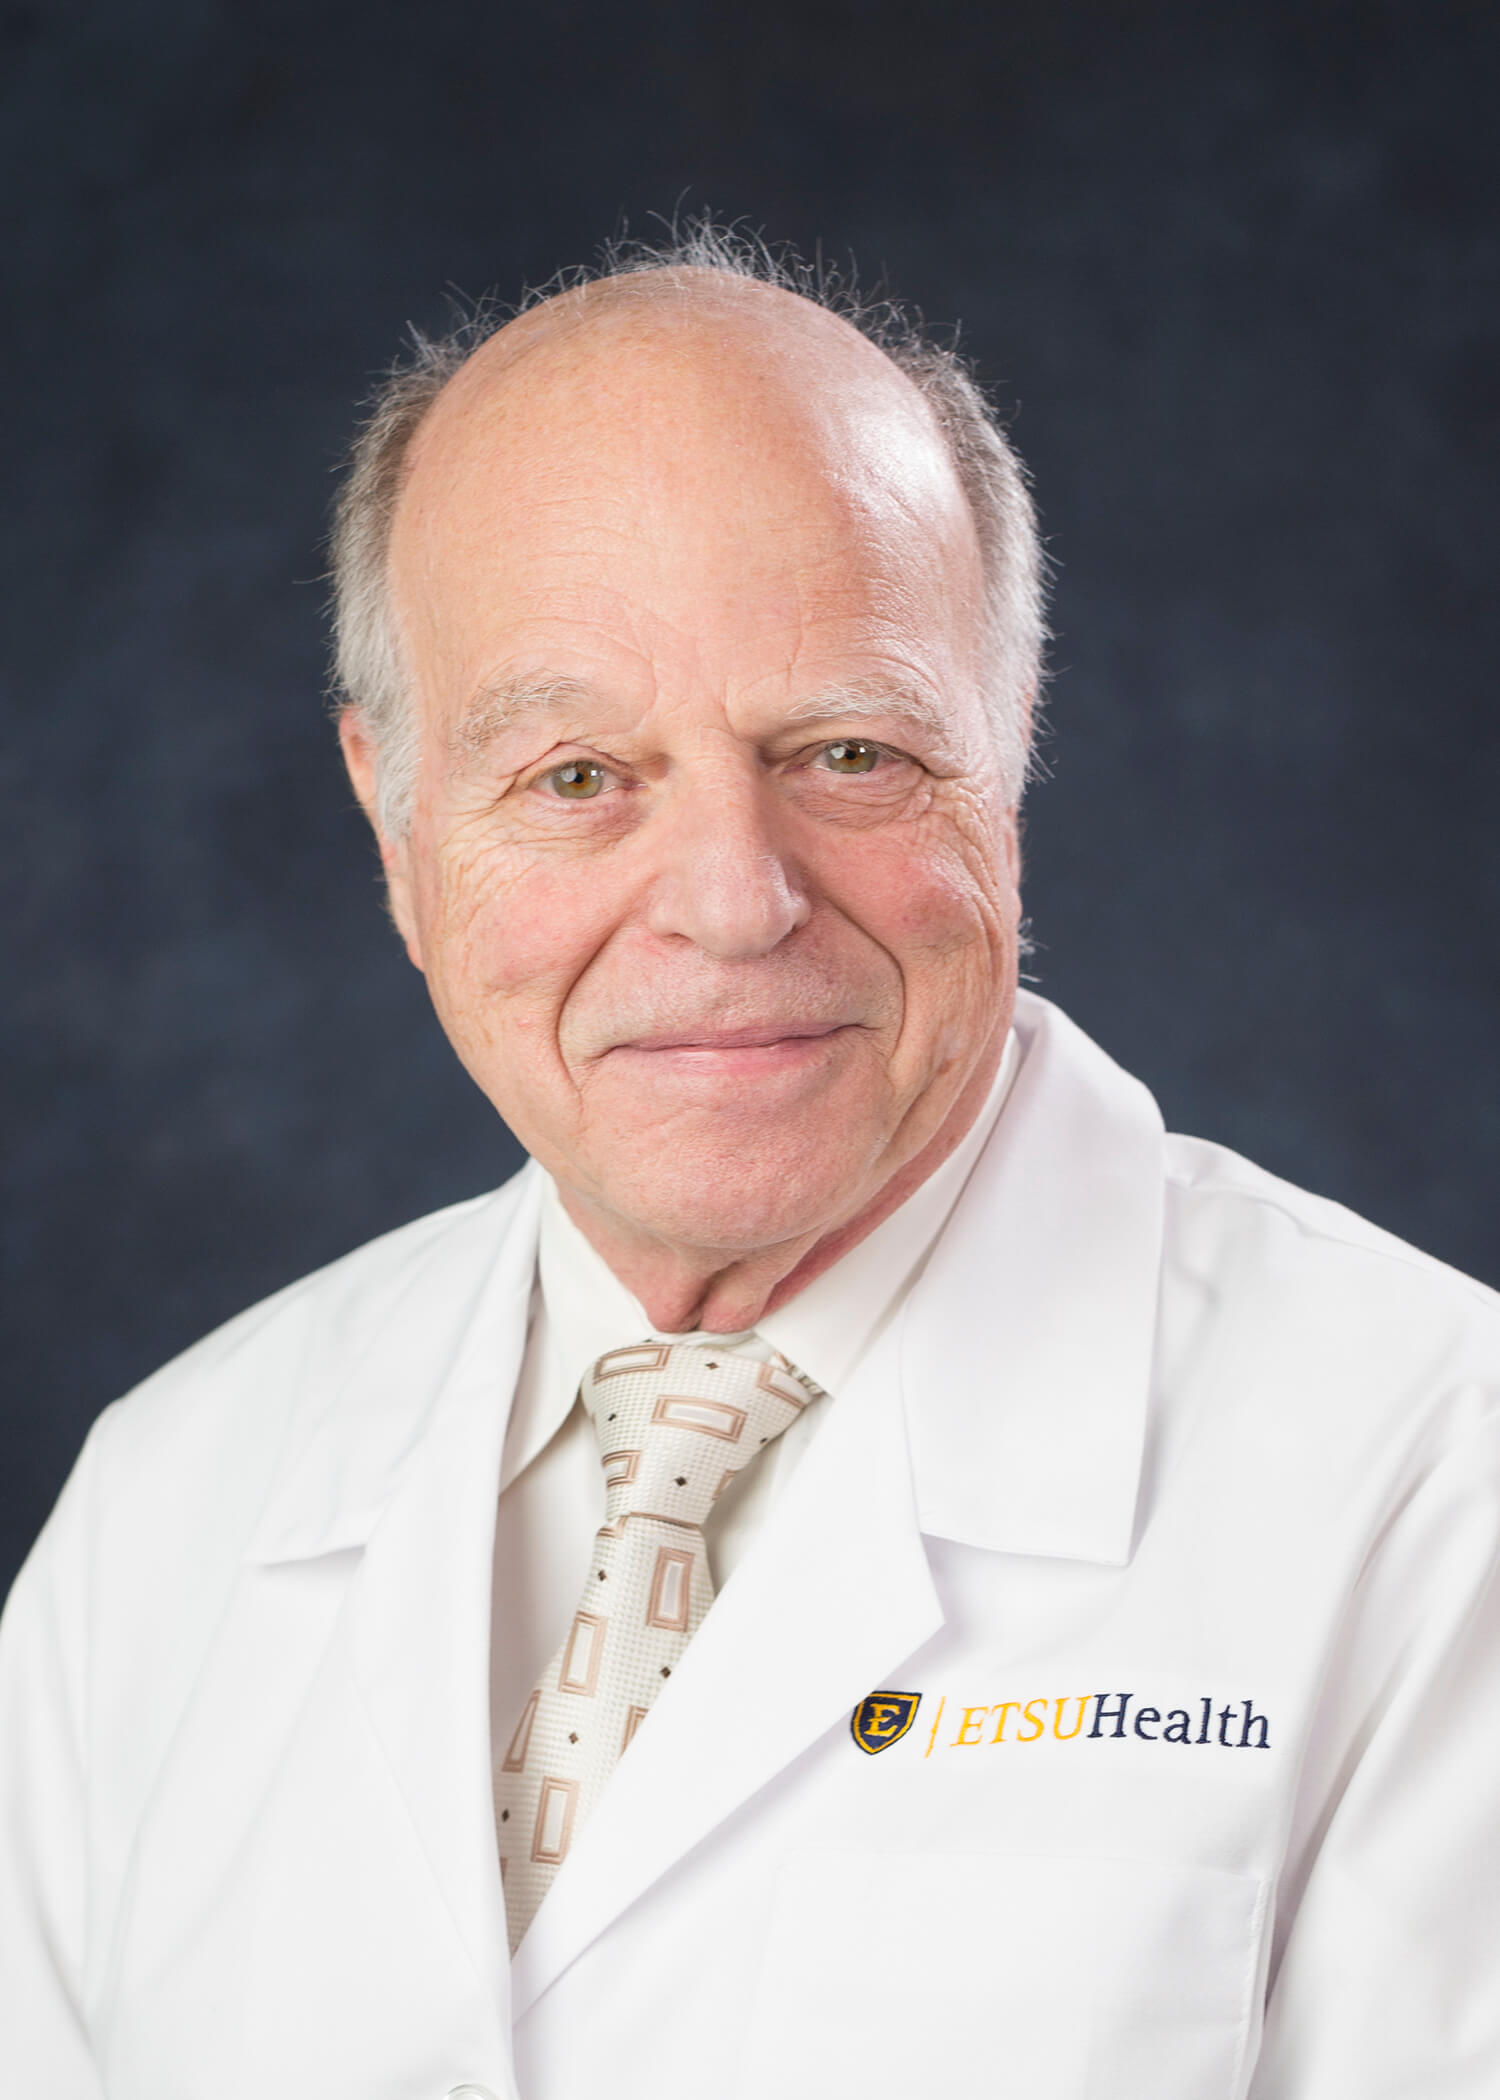 Photo of Ronald Hamdy, M.D.